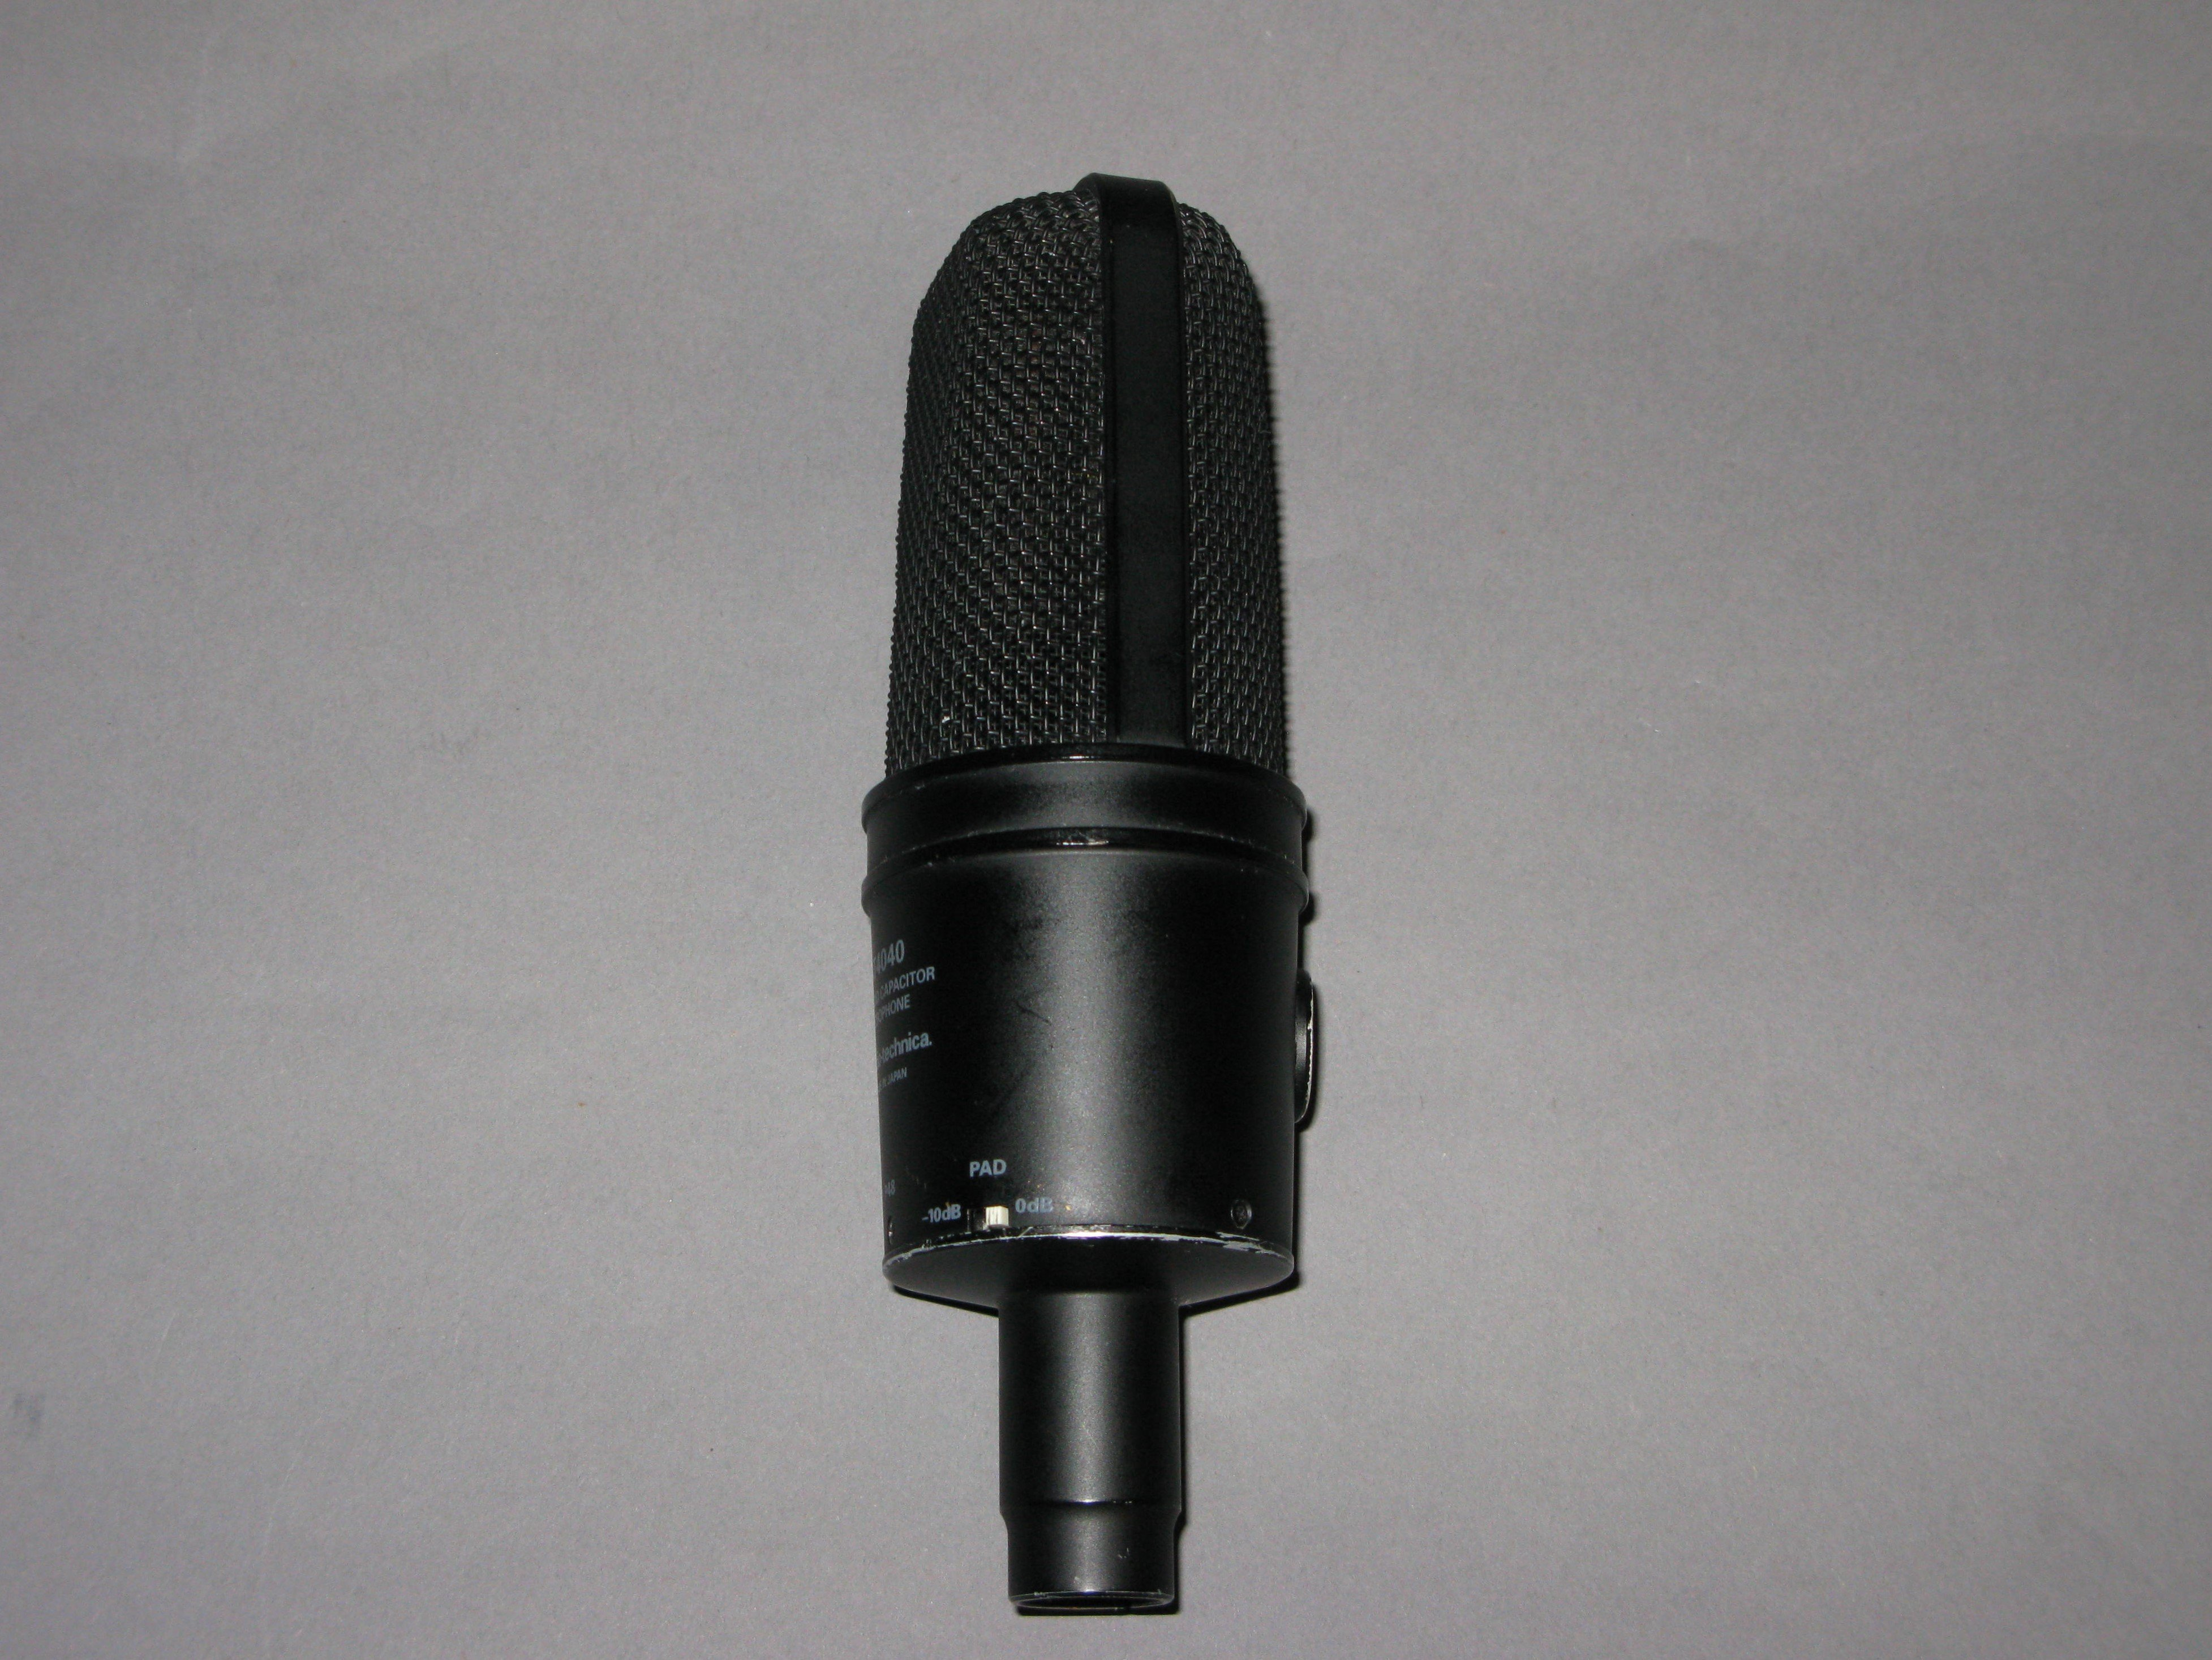 Audio-Technica AT4040 Cardioid Condenser Microphone ...